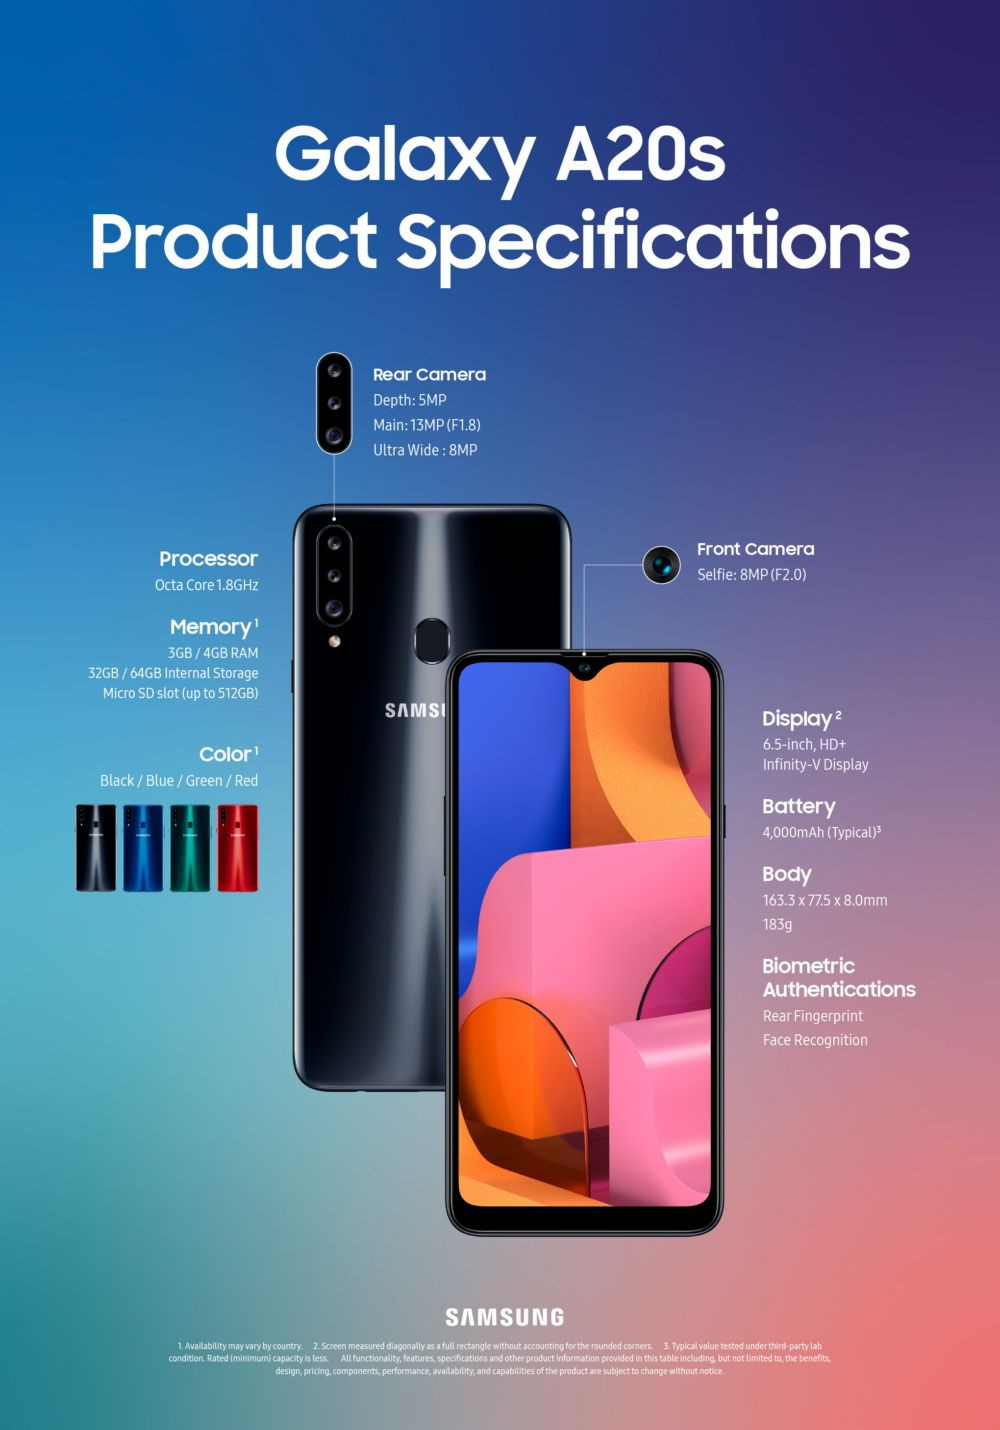 Galaxy A20s Specifications